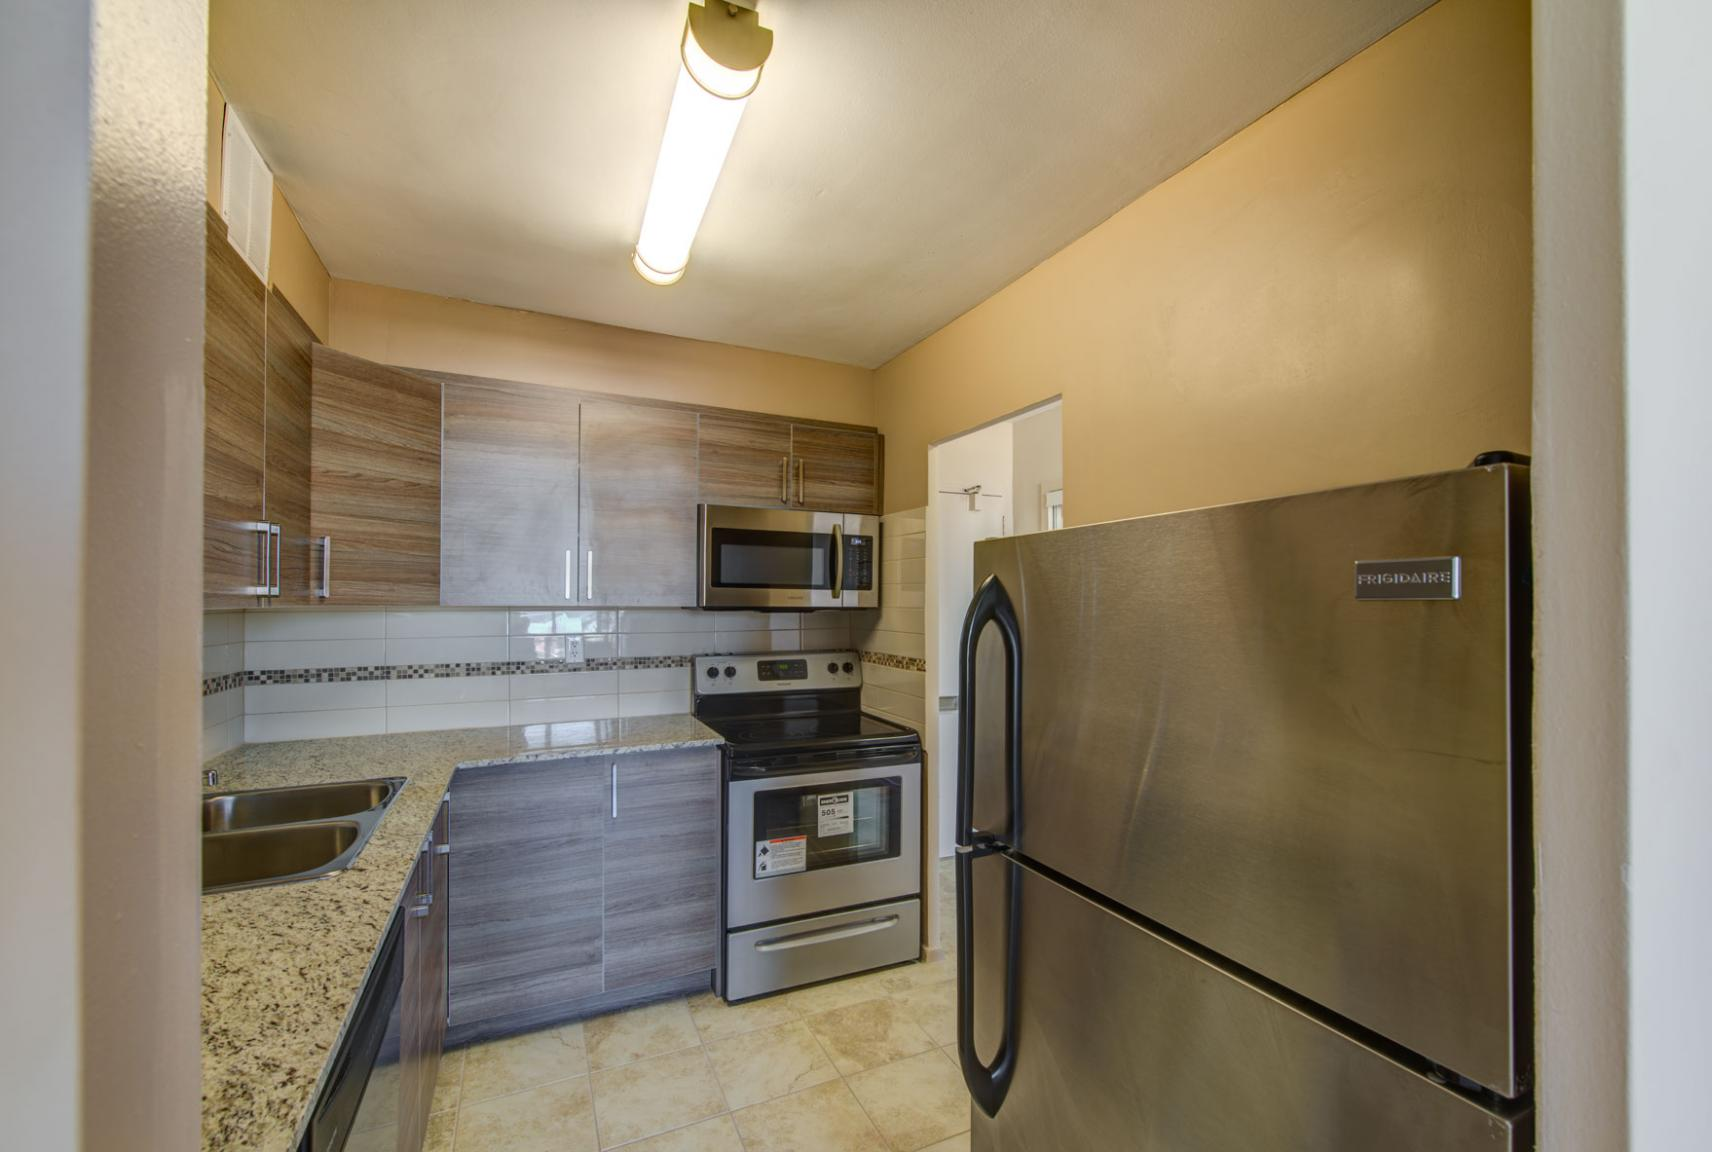 1 bedroom Apartments for rent in North-York at Hunters Lodge - Photo 36 - RentersPages – L400651